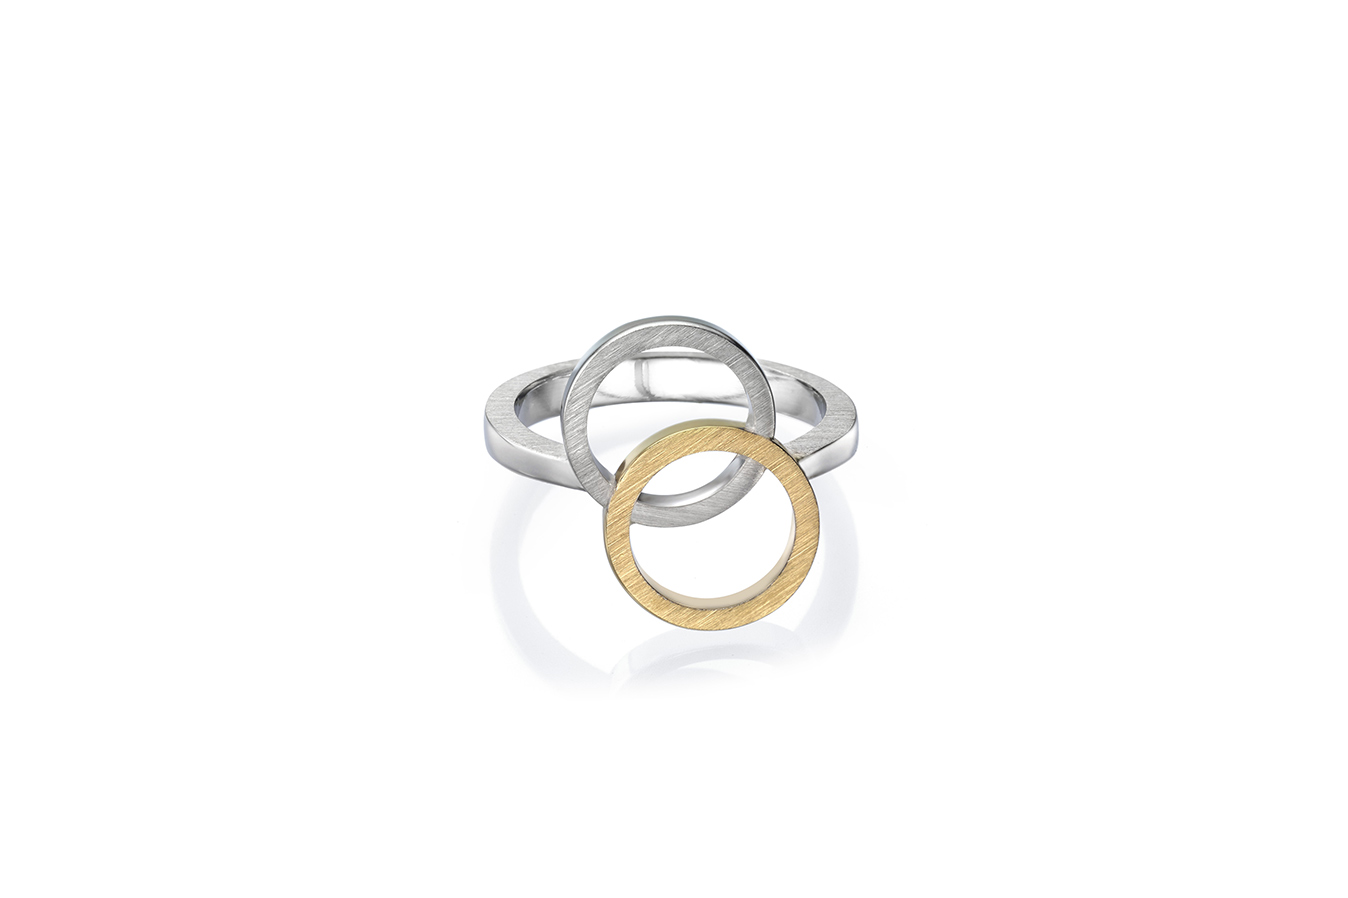 AFFINITY WY RING 18K YELLOW & WHITE GOLD